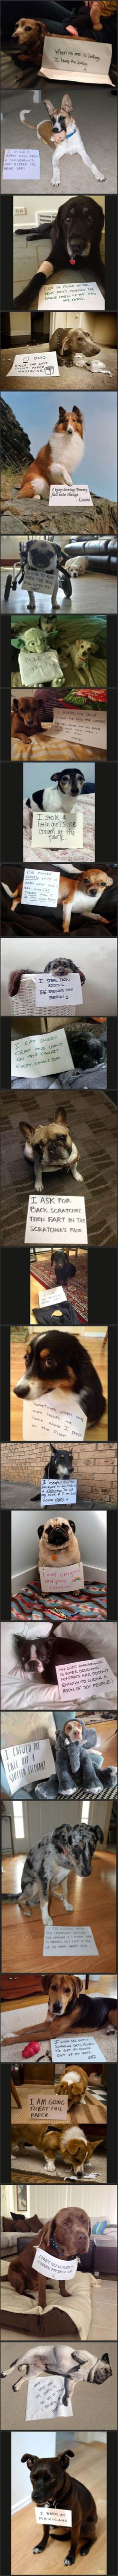 The best of dog shaming!: Funny Animals, Dog Shame, Dog Shaming, Animal Shame, Bad… - https://www.soumo.eu/the-best-of-dog-shaming-funny-animals-dog-shame-dog-shaming-animal-shame-bad-2/